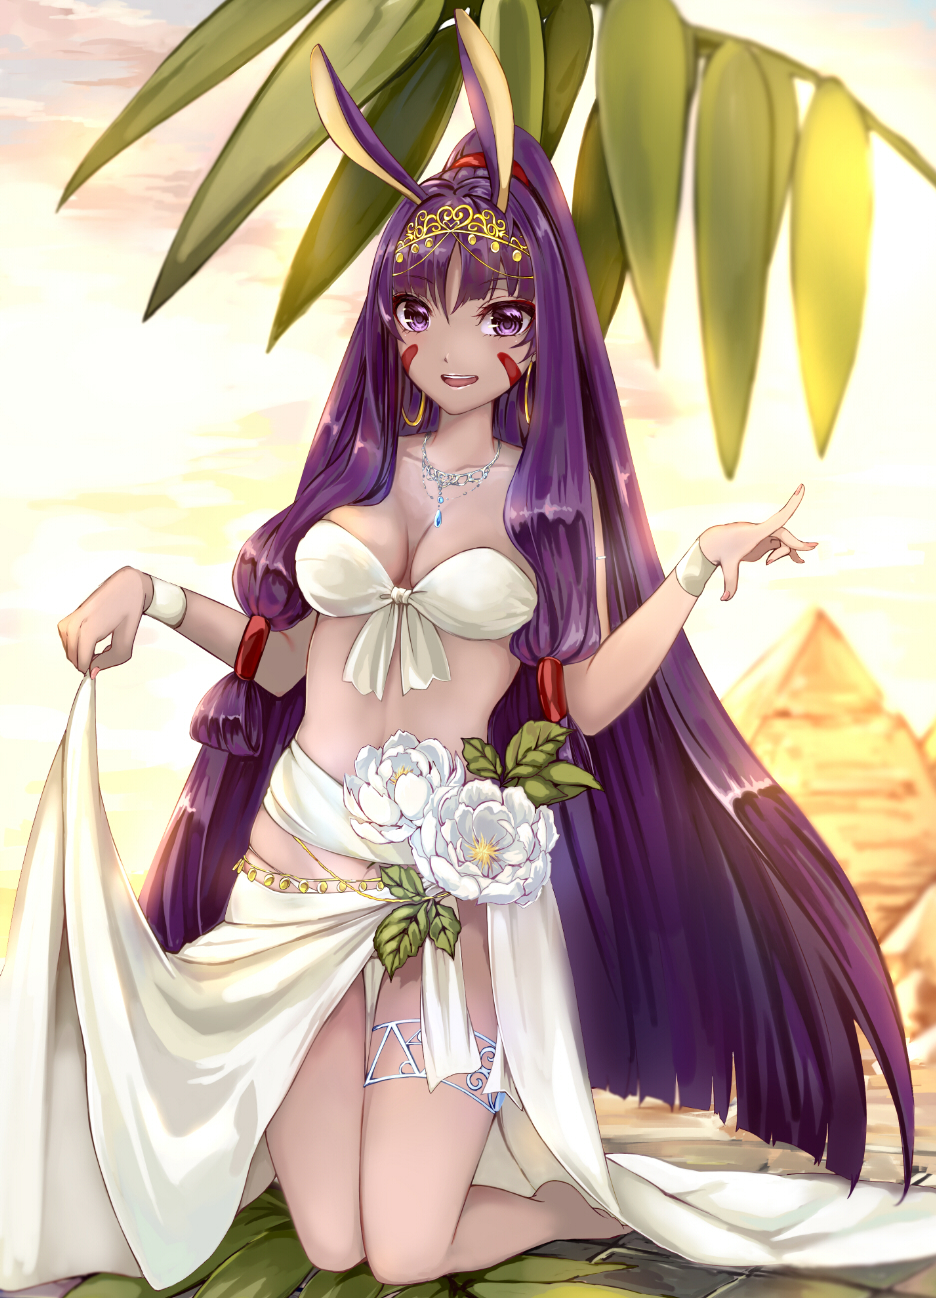 1girl :d animal_ears backlighting bangs barefoot big_hair blurry blurry_background blush breasts cleavage collarbone day earrings eyebrows_visible_through_hair facepaint fate/grand_order fate_(series) fingernails front-tie_bikini front-tie_top full_body hair_tubes highres hoop_earrings jewelry kneeling kyanoko_(rakalirica) leaf lifted_by_self long_hair looking_back low-tied_long_hair medium_breasts nail_polish necklace nitocris_(fate/grand_order) open_mouth outdoors palm_leaf pink_nails purple_hair pyramid sarong_lift smile solo sunlight thigh_gap thigh_strap upper_teeth very_long_hair violet_eyes white_bikini_top white_flower wristband